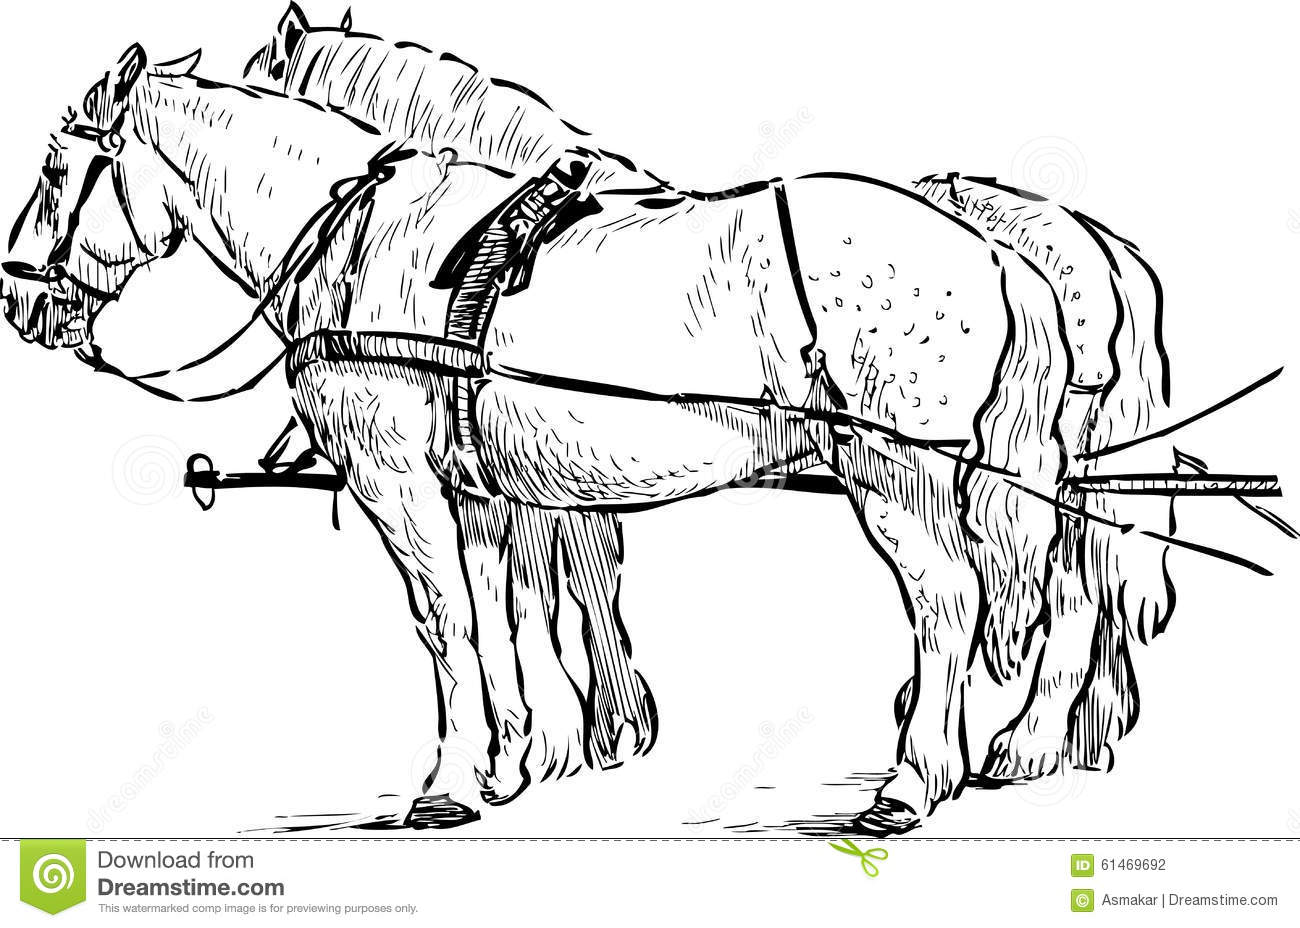 Horses in the harness stock vector. Illustration of tail